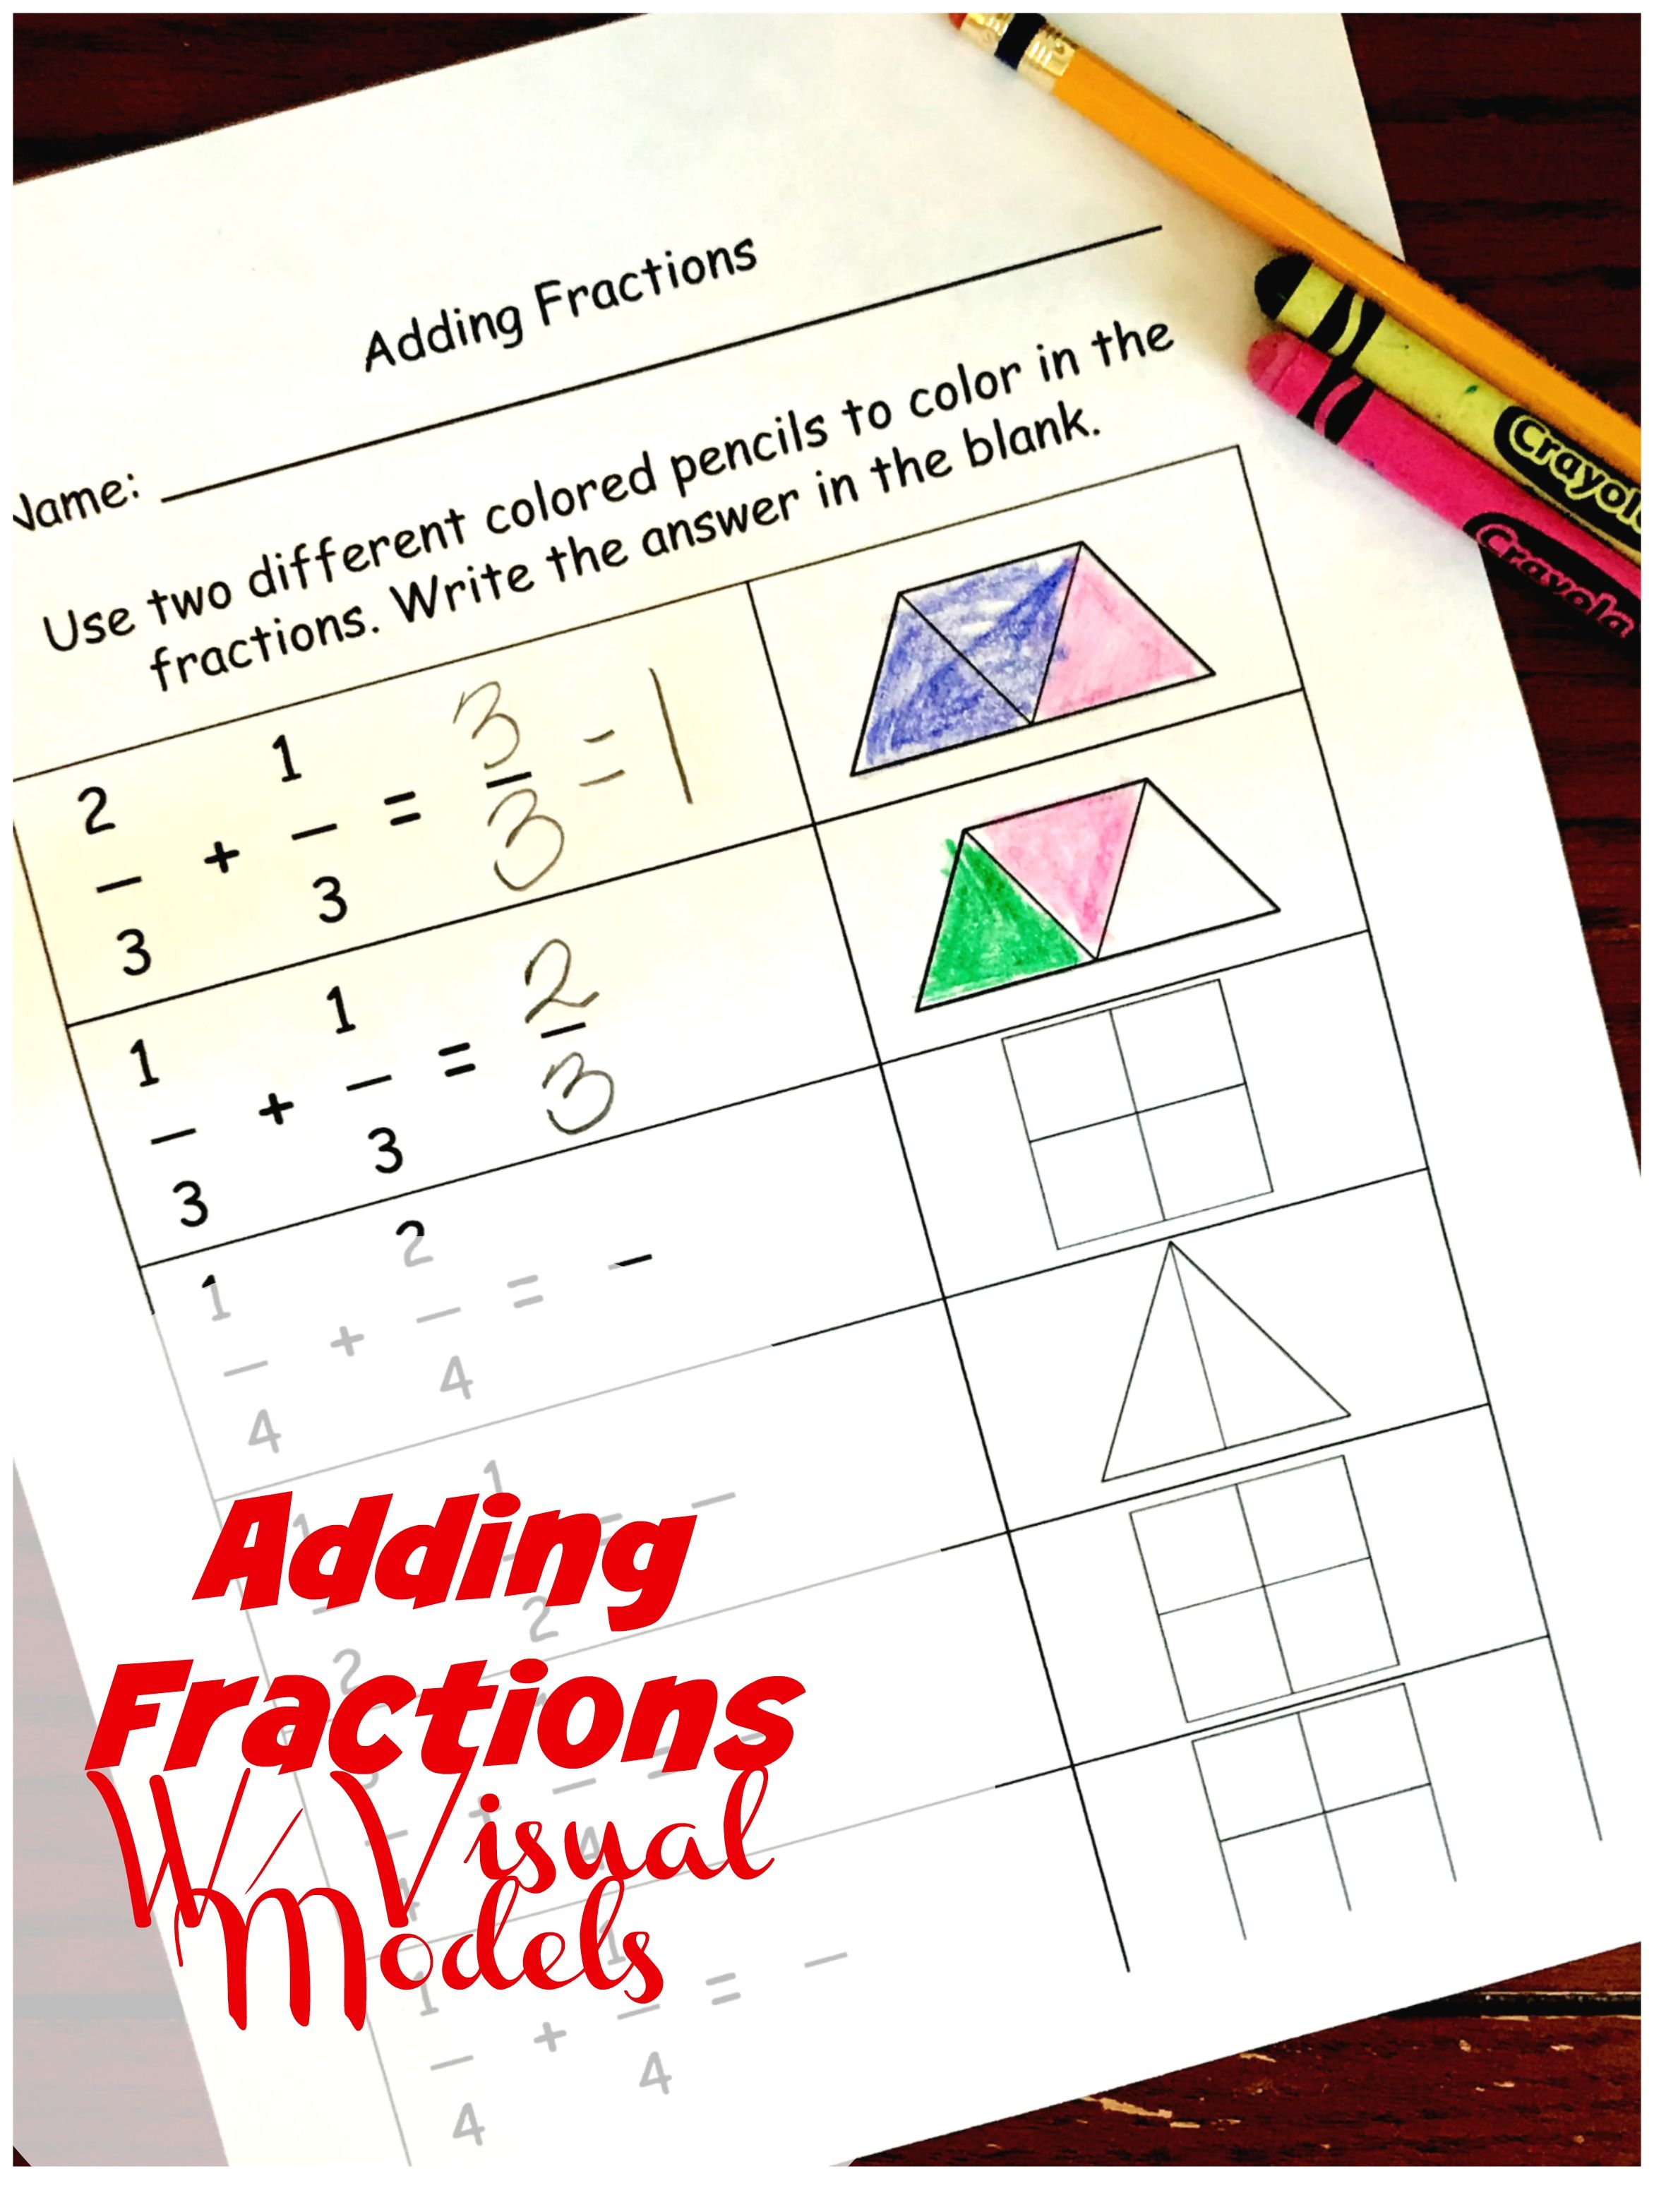 Adding Fractions Using Visual Models Worksheet